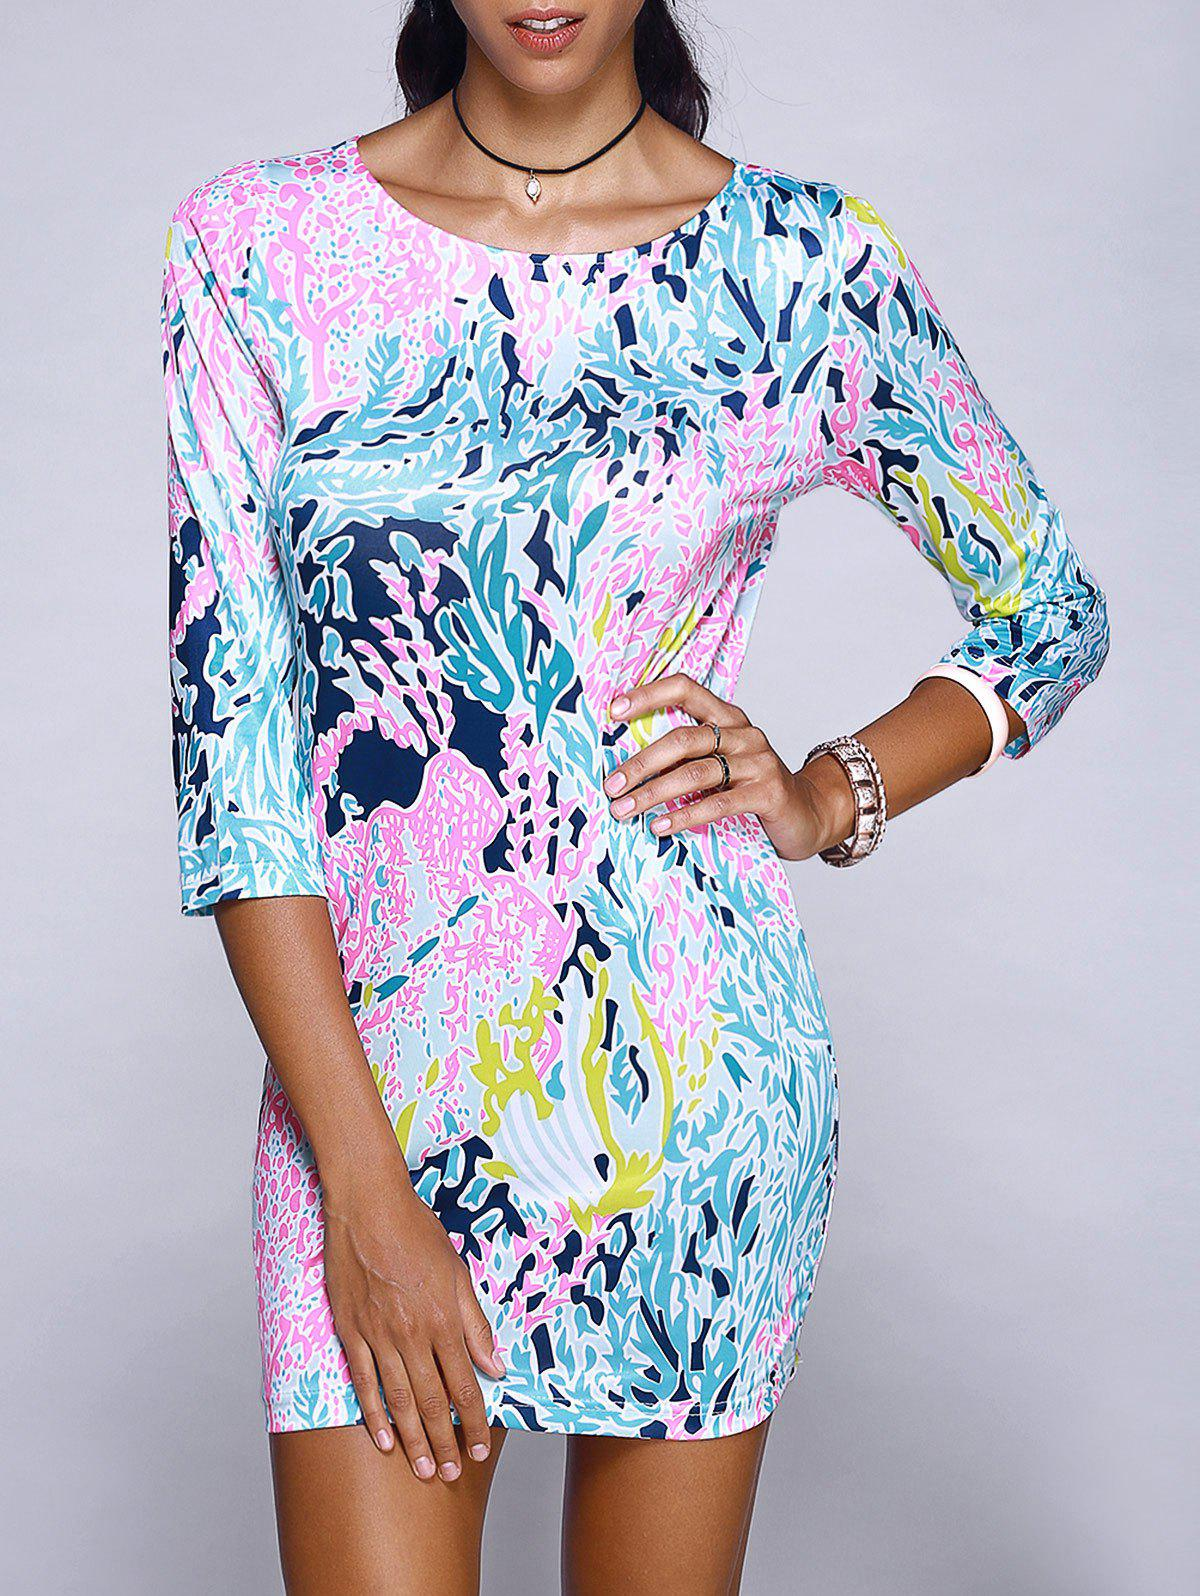 Chic Scoop Neck Abstract Plant Print Mini Dress For Women - COLORMIX XL